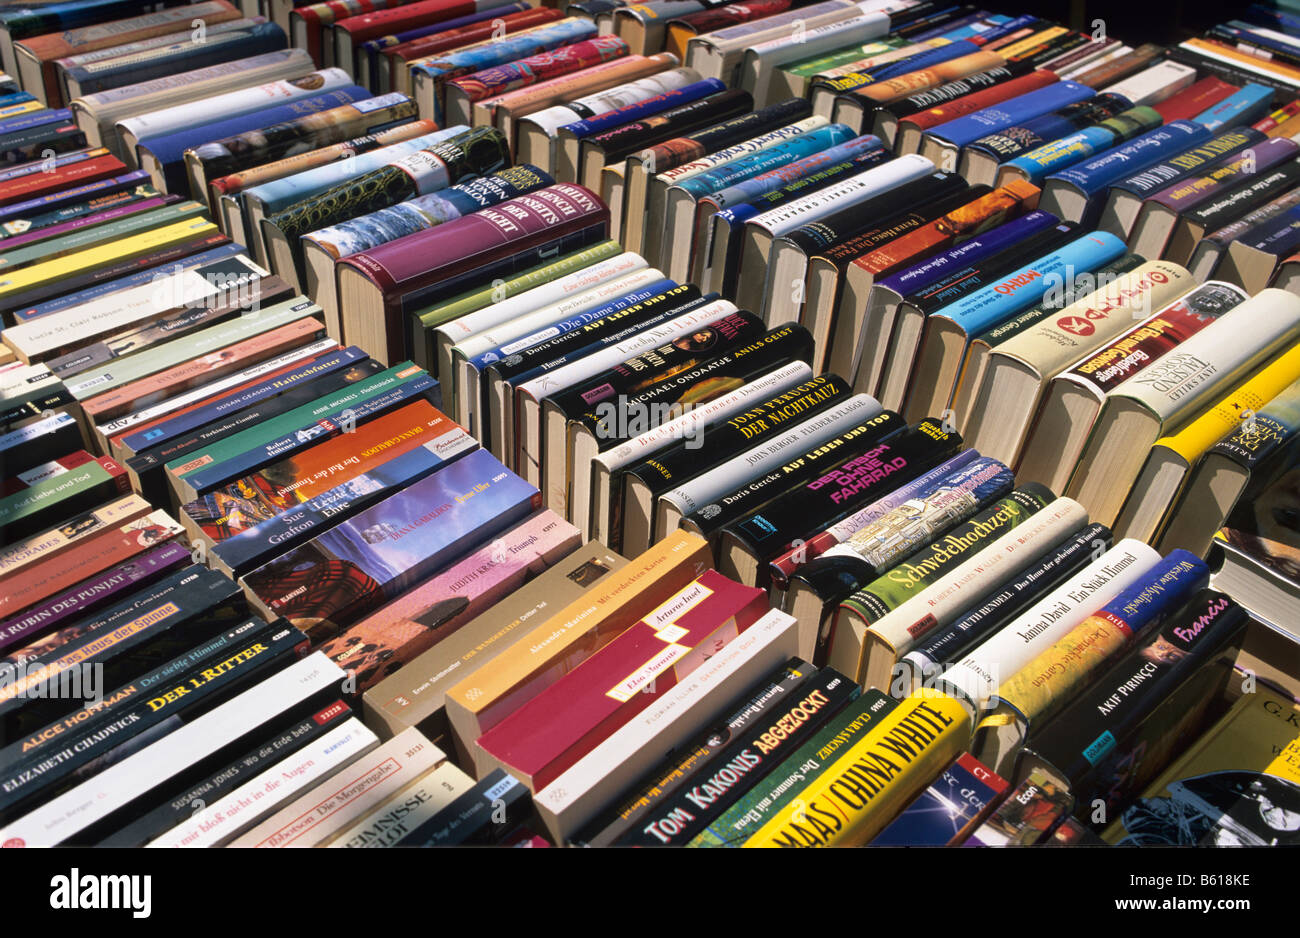 Second-hand book market - Stock Image